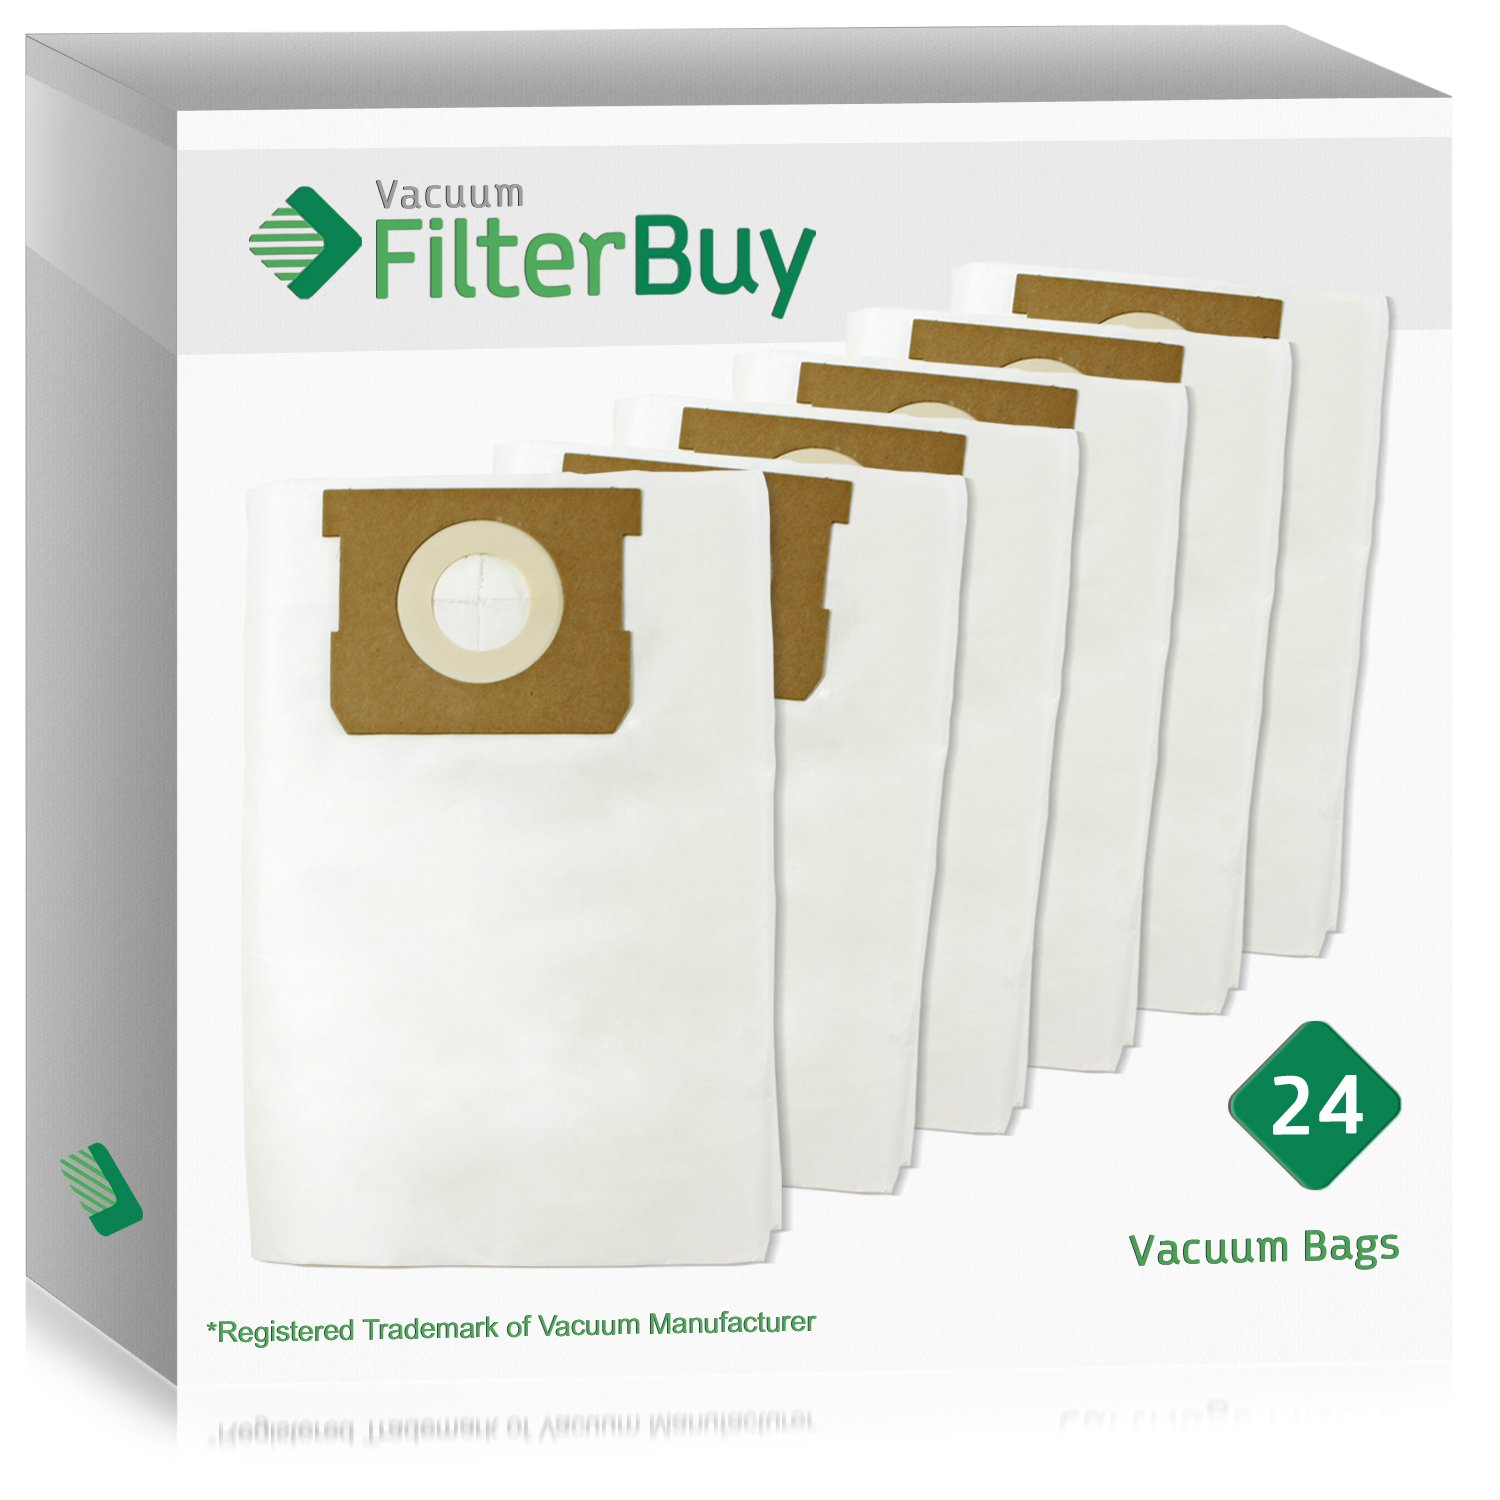 24 - FilterBuy VacMaster Compatible Dust Bags. Designed by FilterBuy to fit VacMaster & Shop-Vac Vacuum Cleaners.